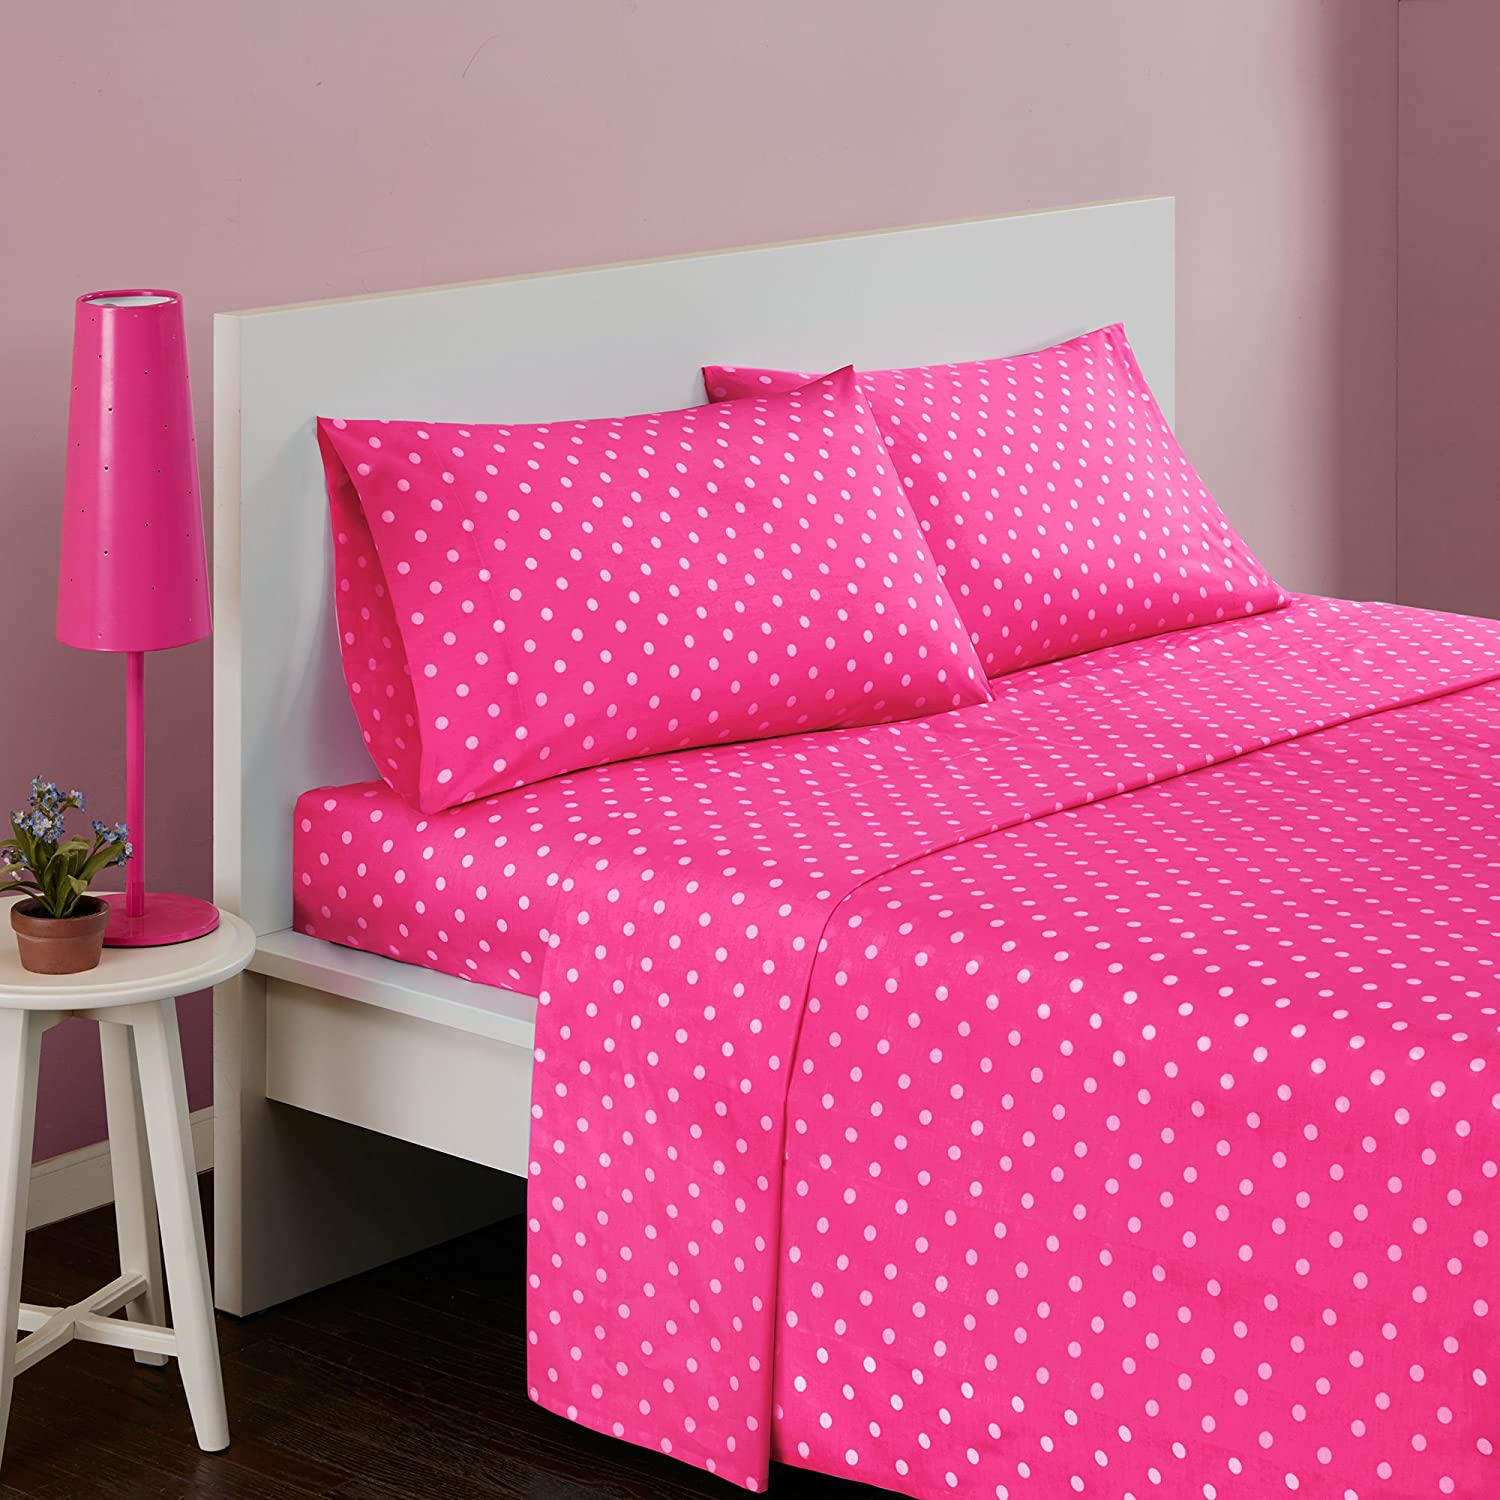 3 Piece Girls Polka Dot Dark Pink Twin Deep Pocket Sheet Set, Hot Pink Solid Color, All Over Dot Design Circles Teen Bedding Kids Bedroom Bold Colorful Fun Contemporary Modern, Percale Cotton